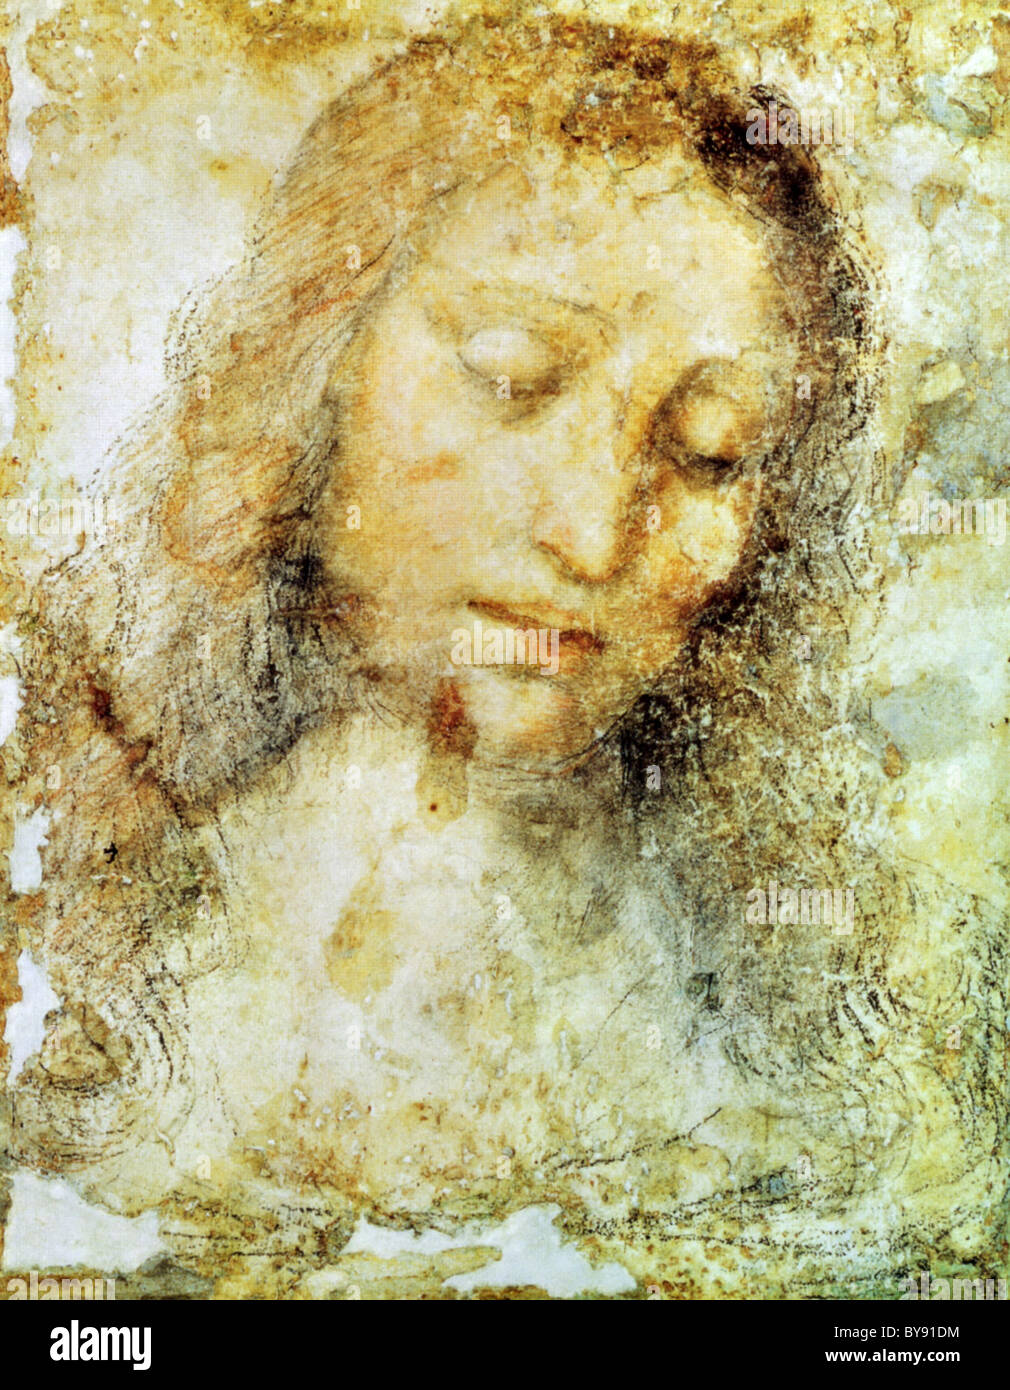 Head of Christ by Leonardo da Vinci. - Stock Image